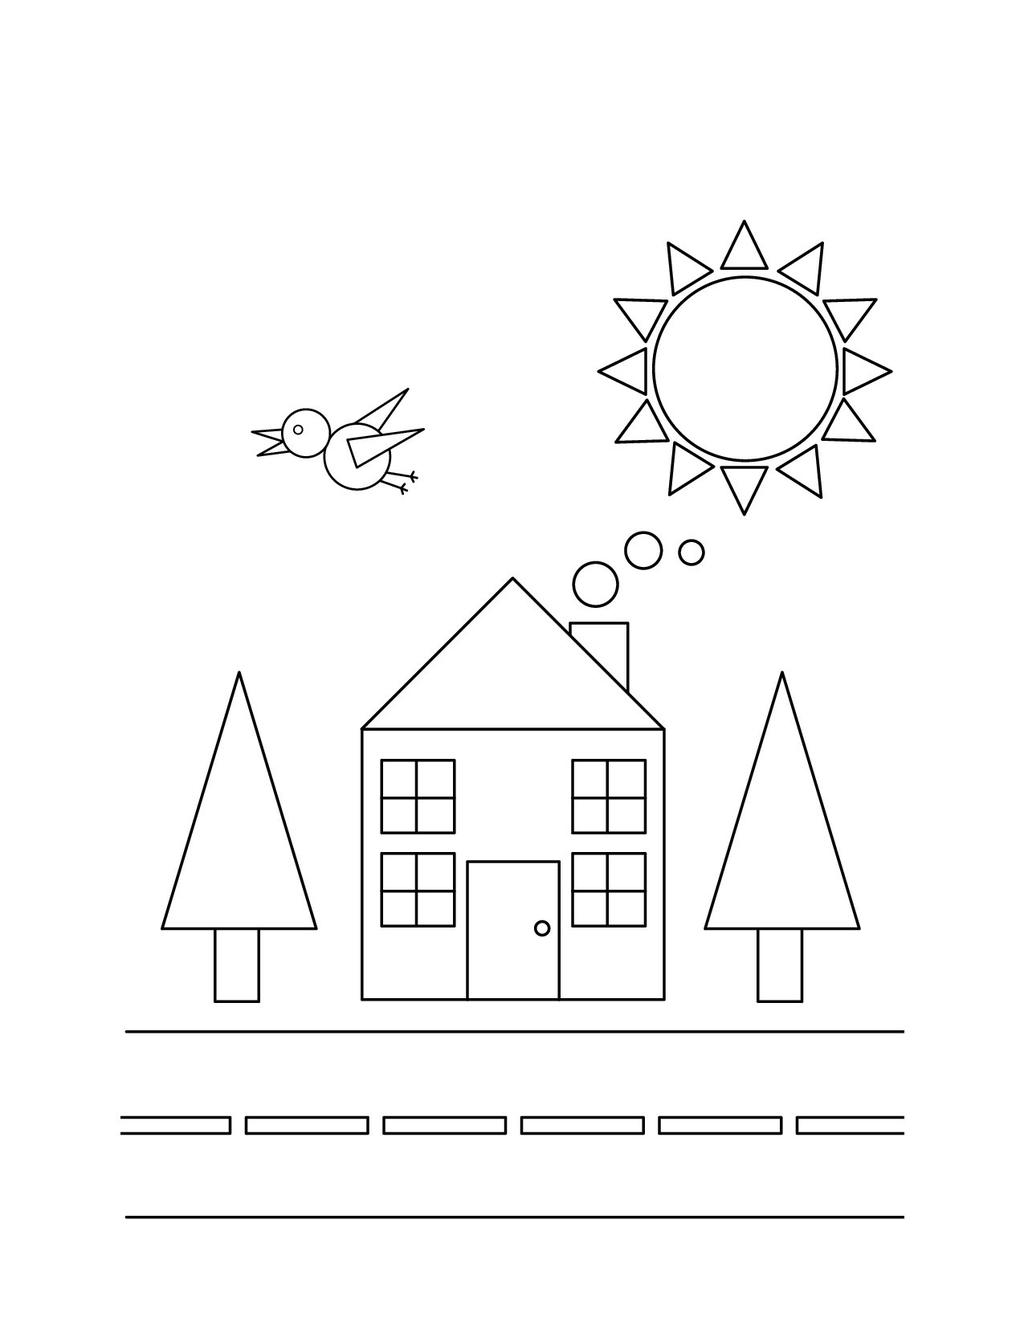 House Shapes Coloring Pages